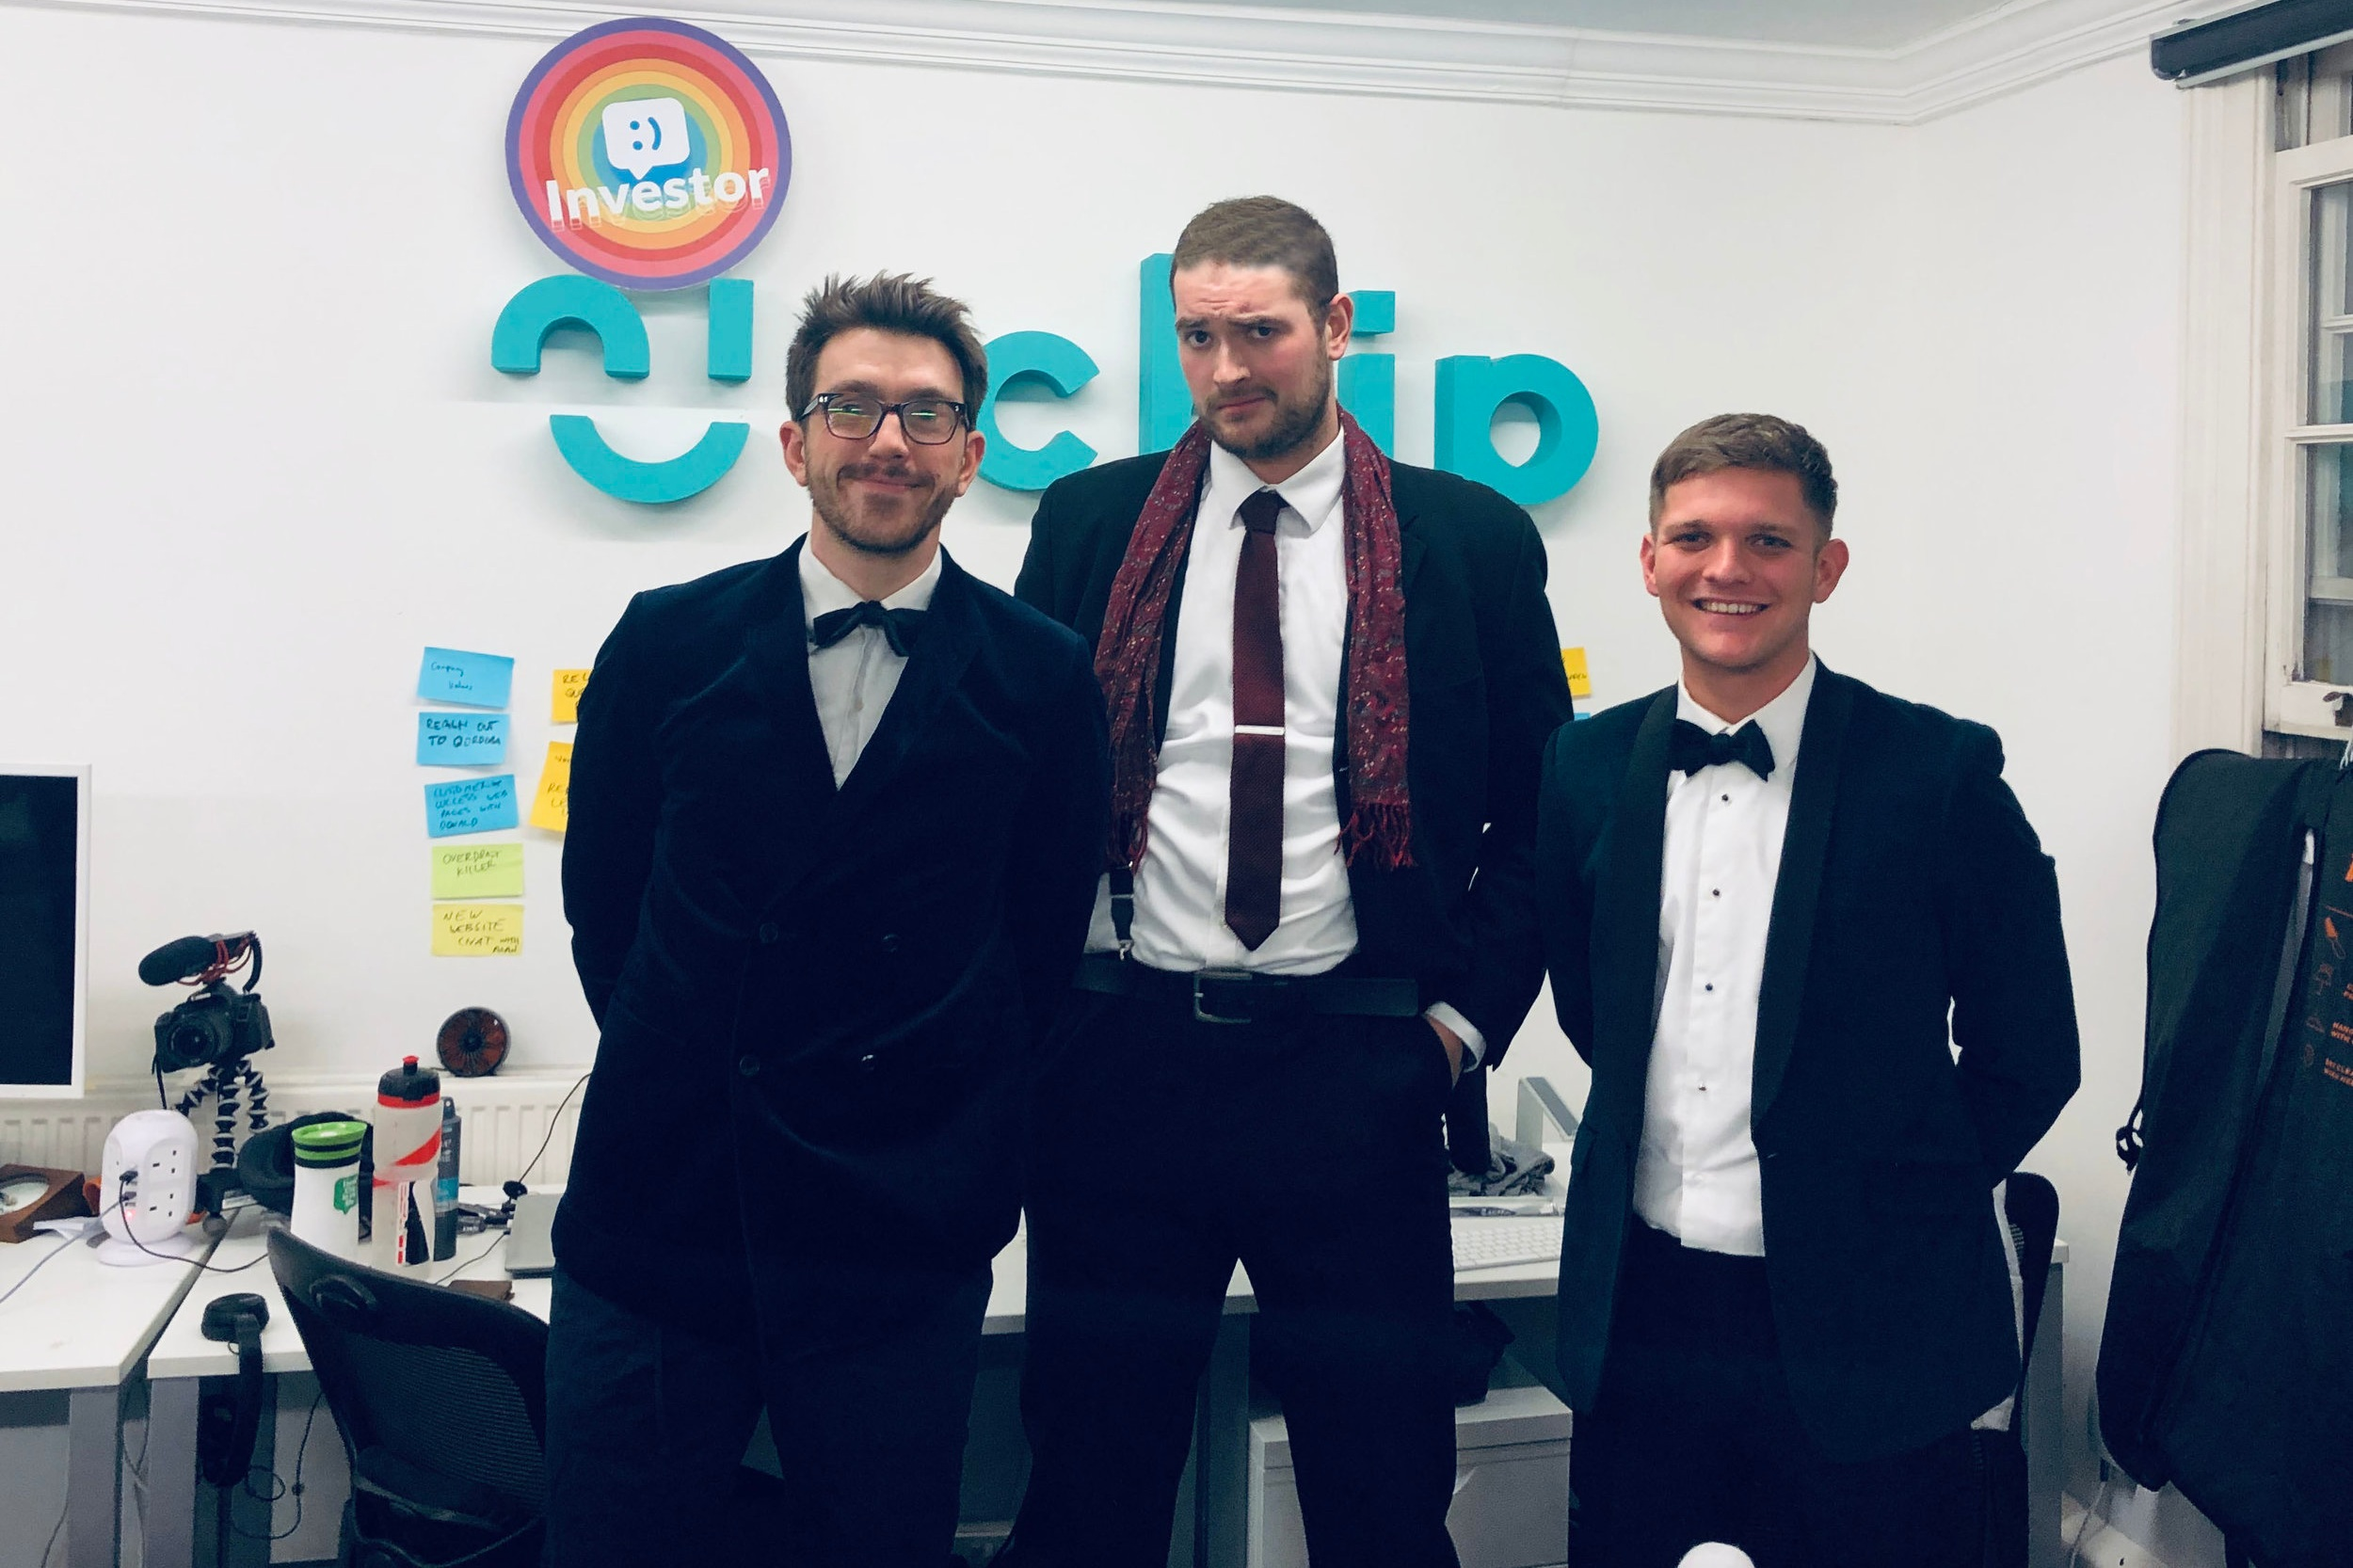 The boys from marketing looking #superfly before heading off. Tom is channelling his inner Don Draper.